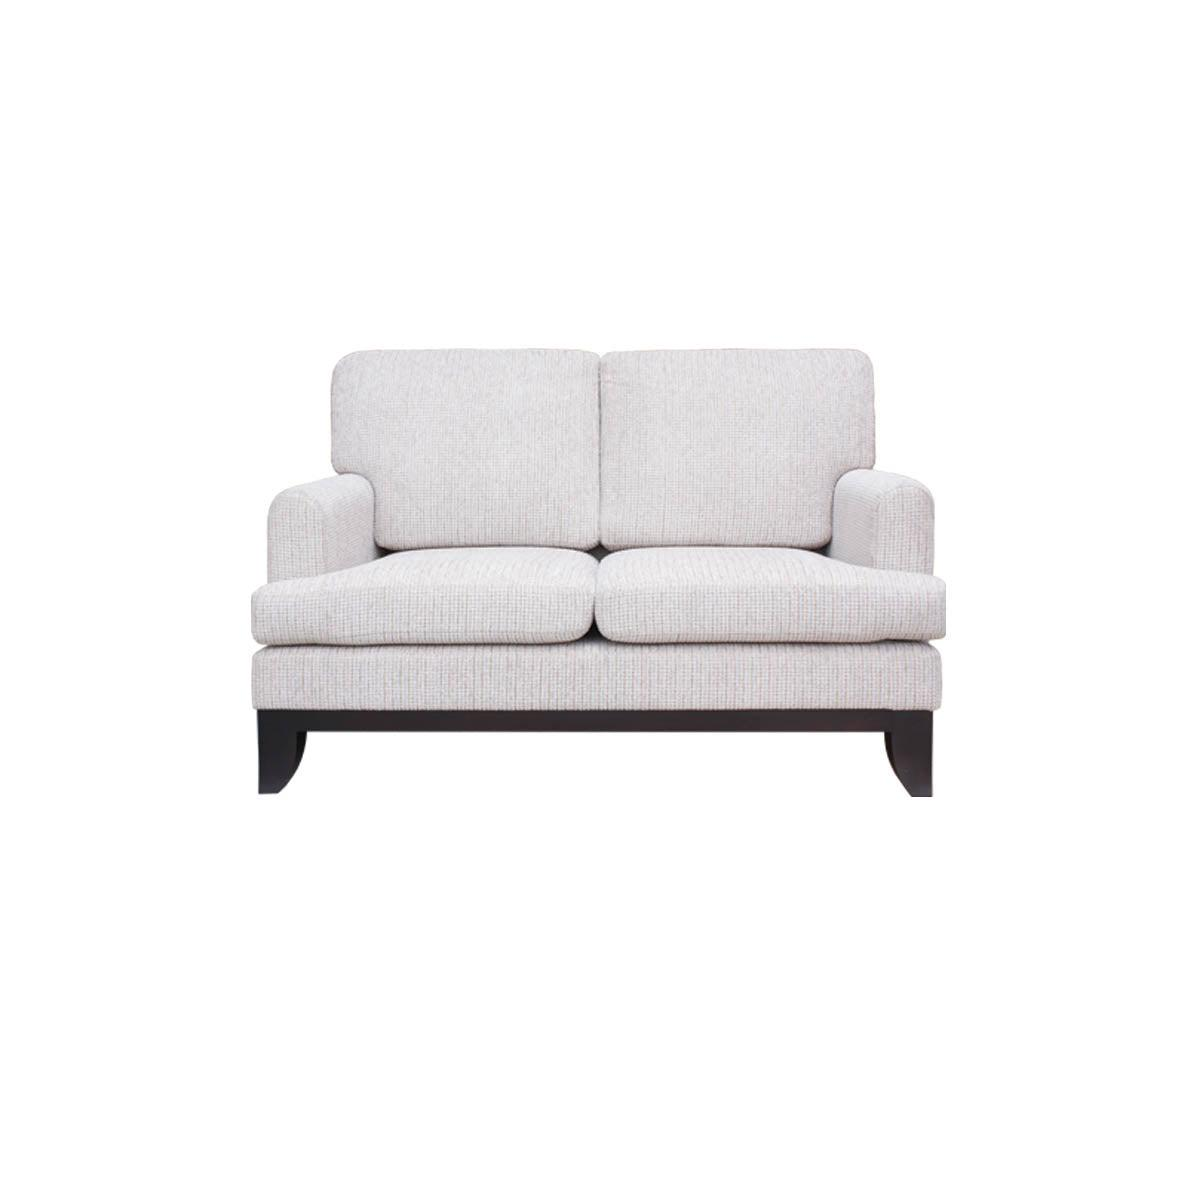 Boston two seat wing armed sofa chair